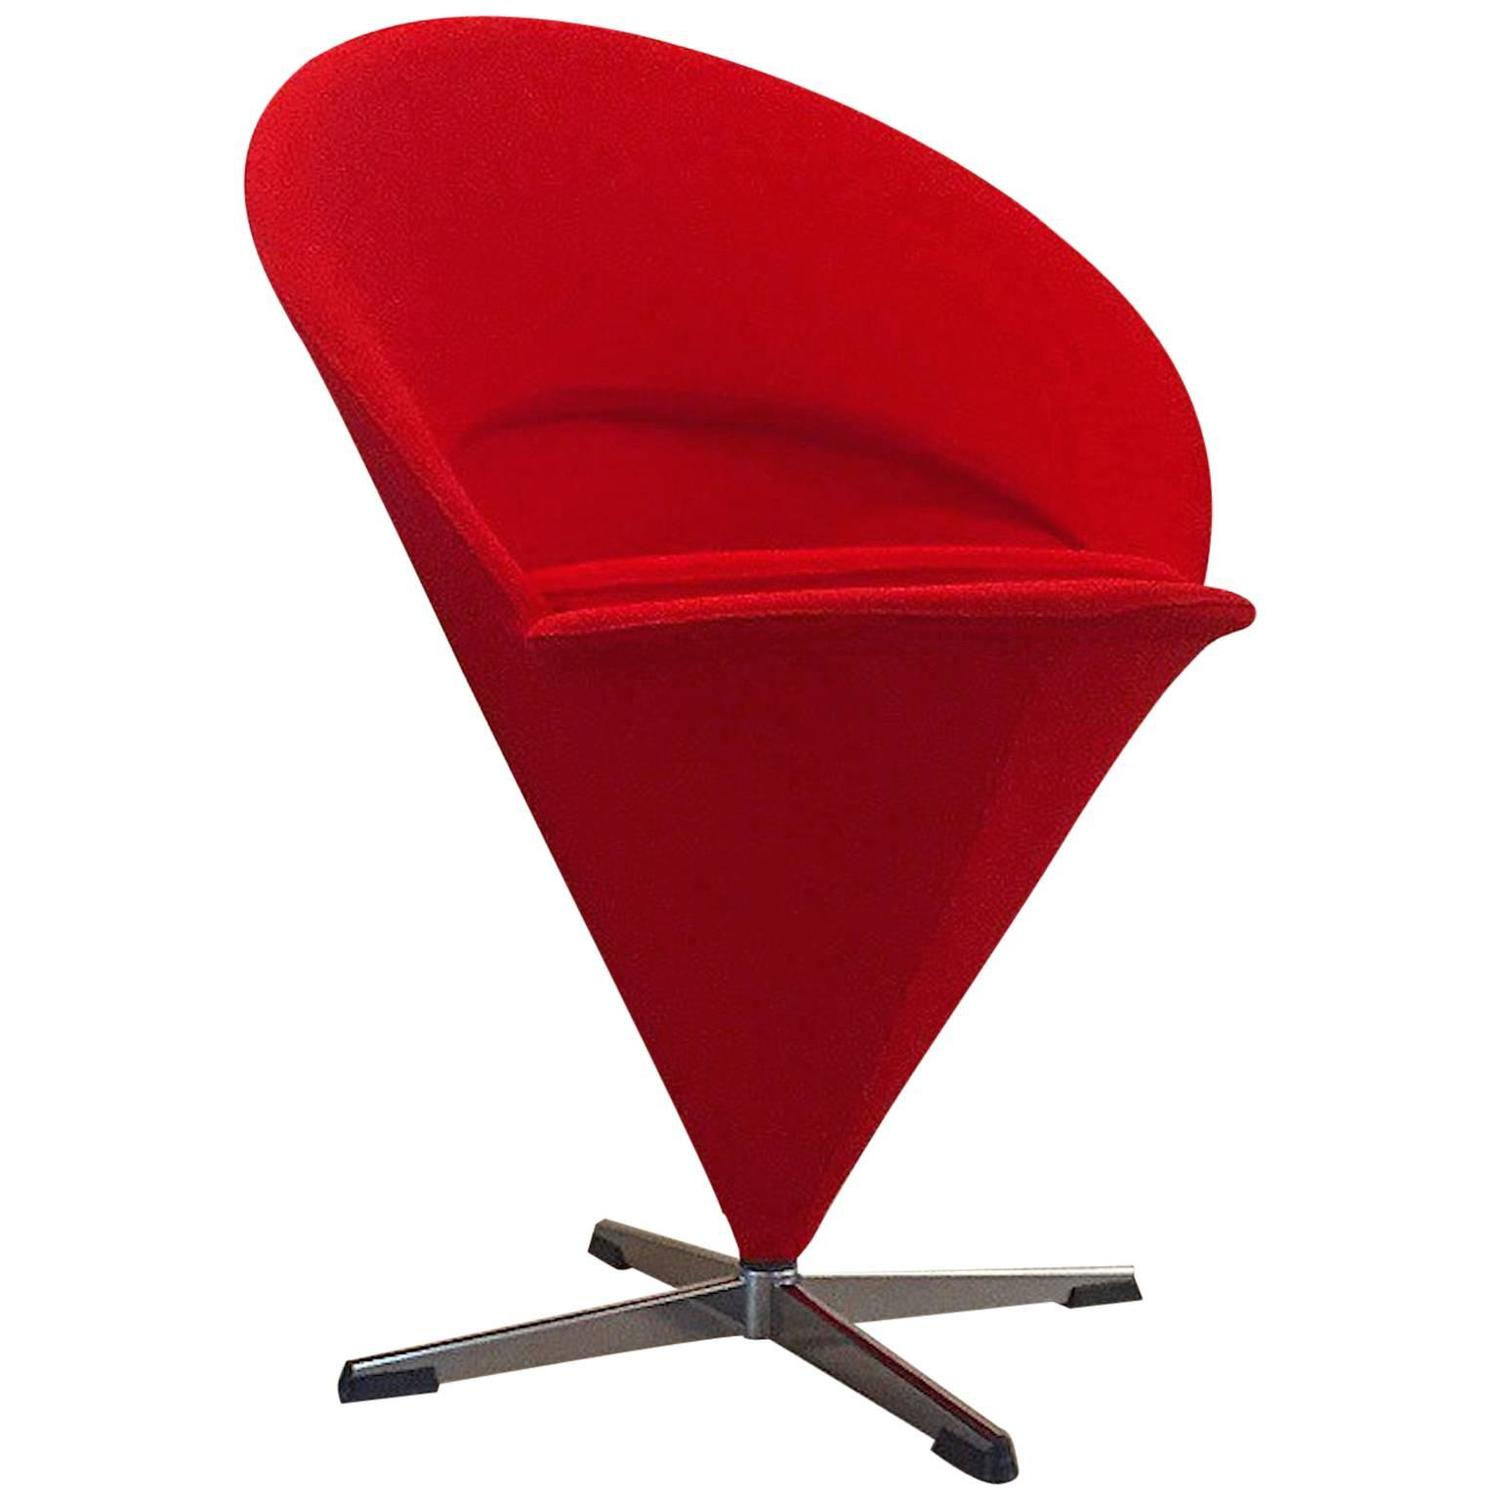 danish design mid century verner panton k series cone chair red wool